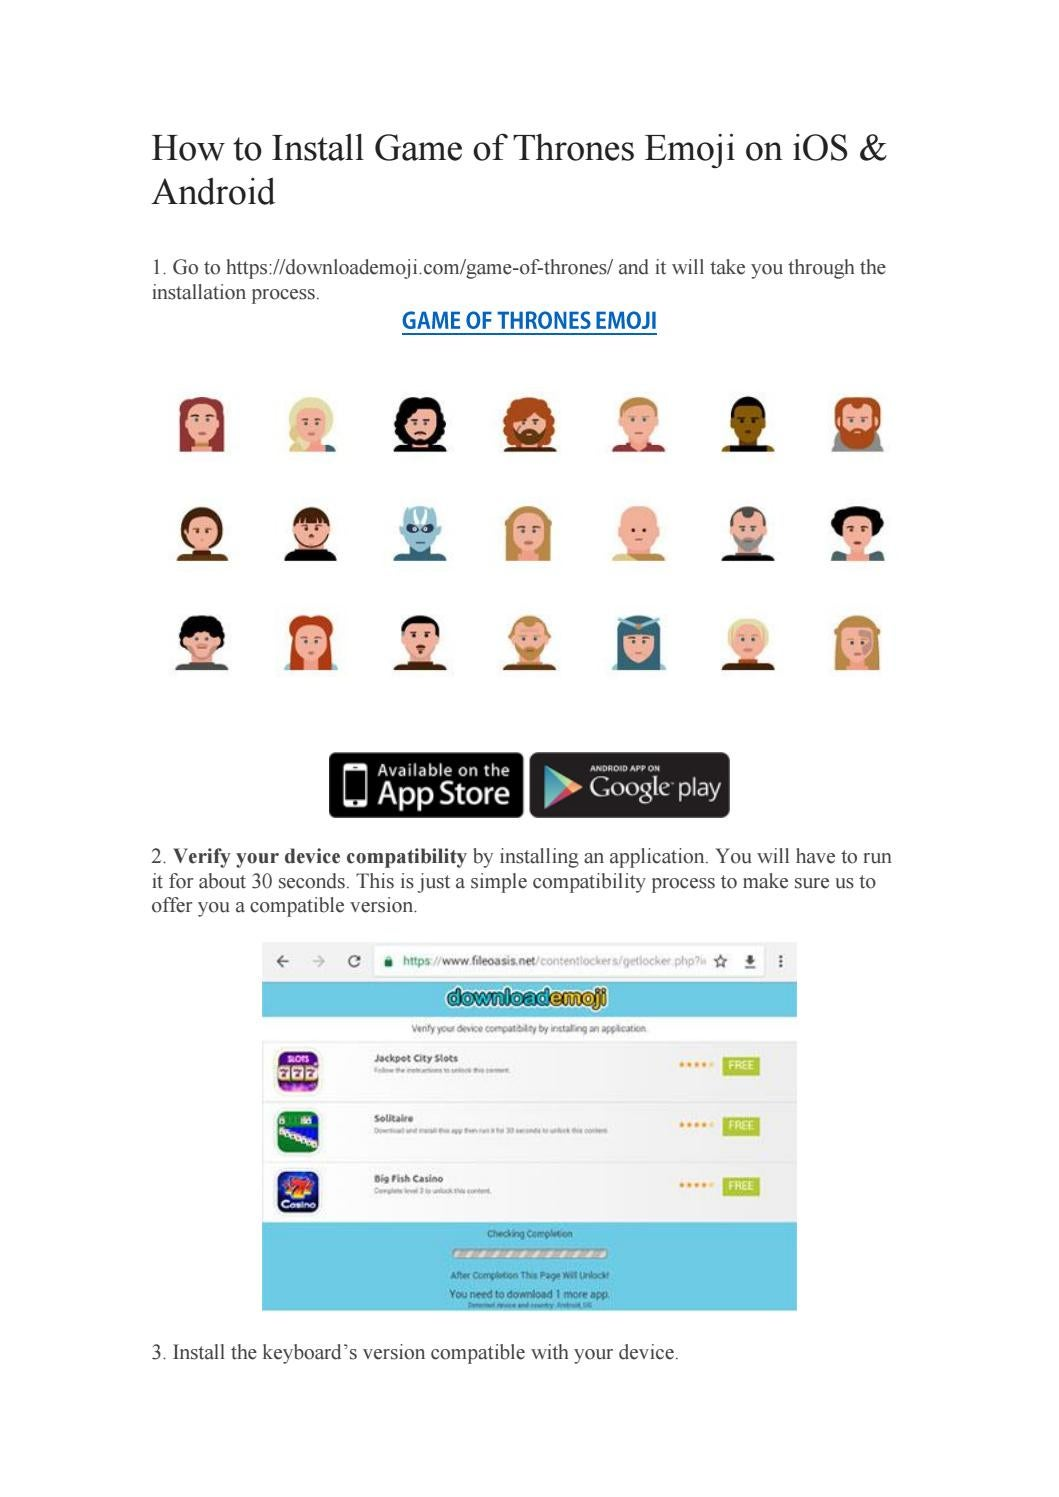 Game Of Thrones Emoji Keyboard for iOS & Android | Download